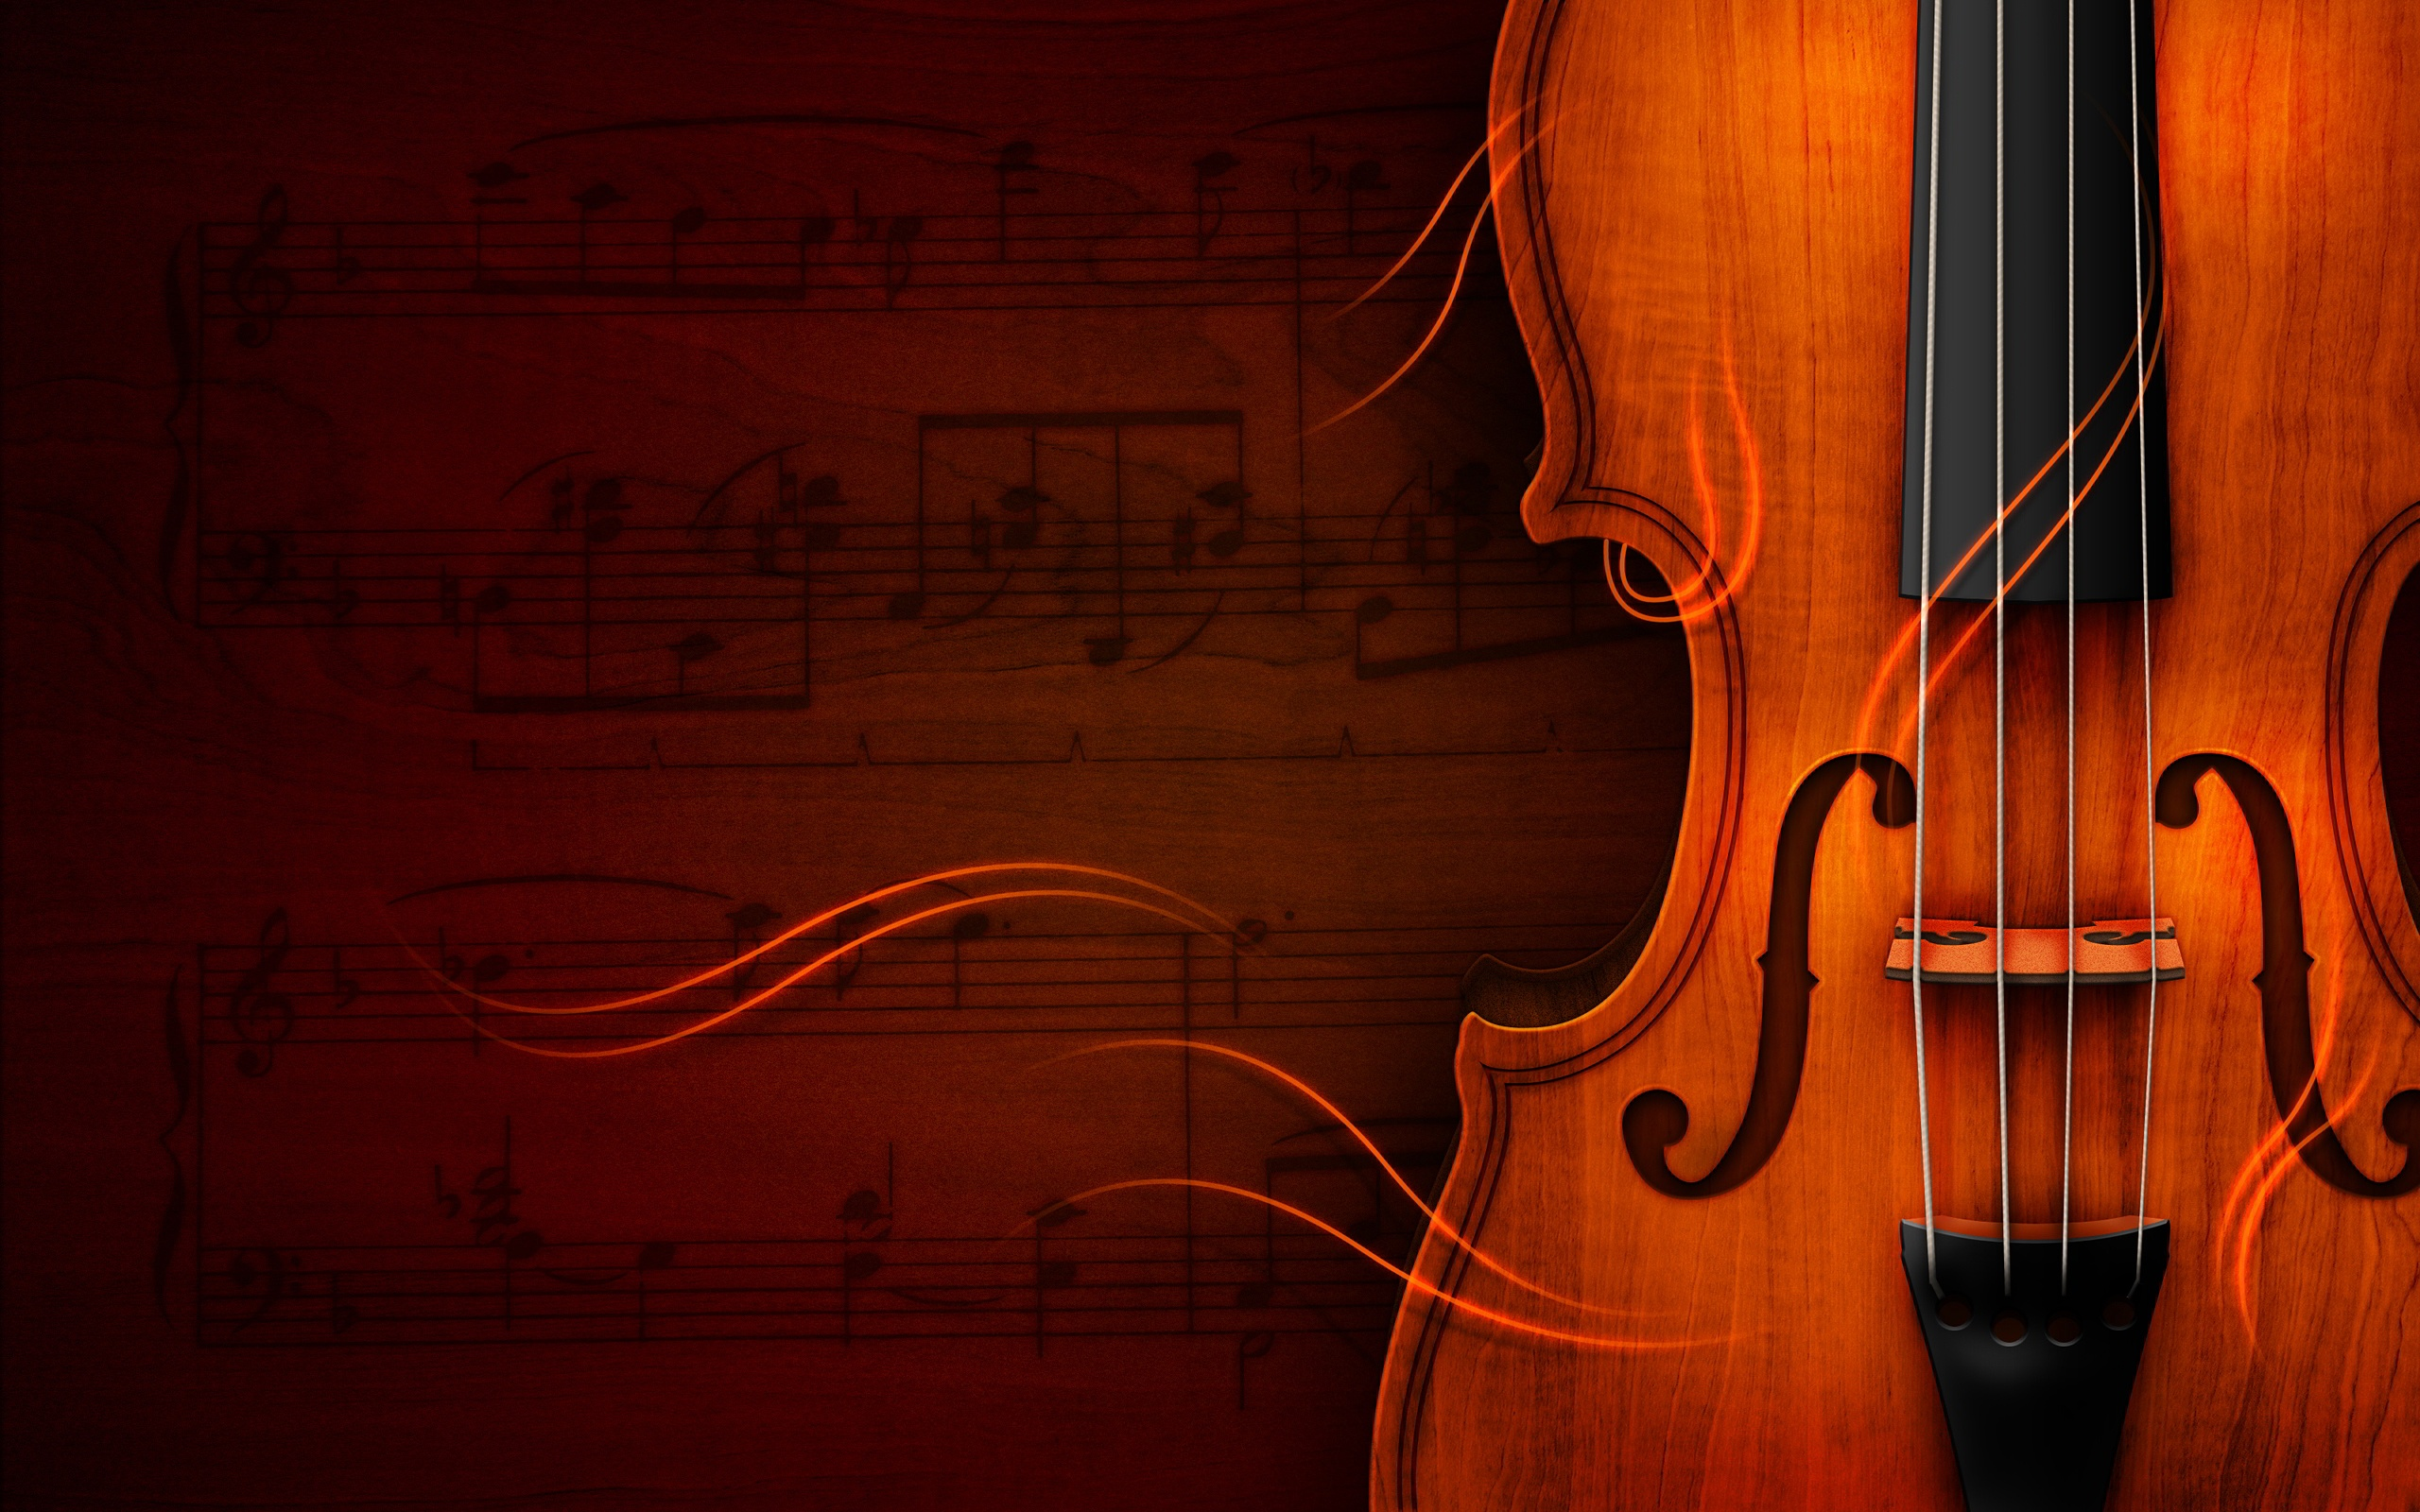 Description: The Wallpaper above is Music violin notes Wallpaper in Resolution 2560x1600. Choose your Resolution and Download Music violin notes Wallpaper